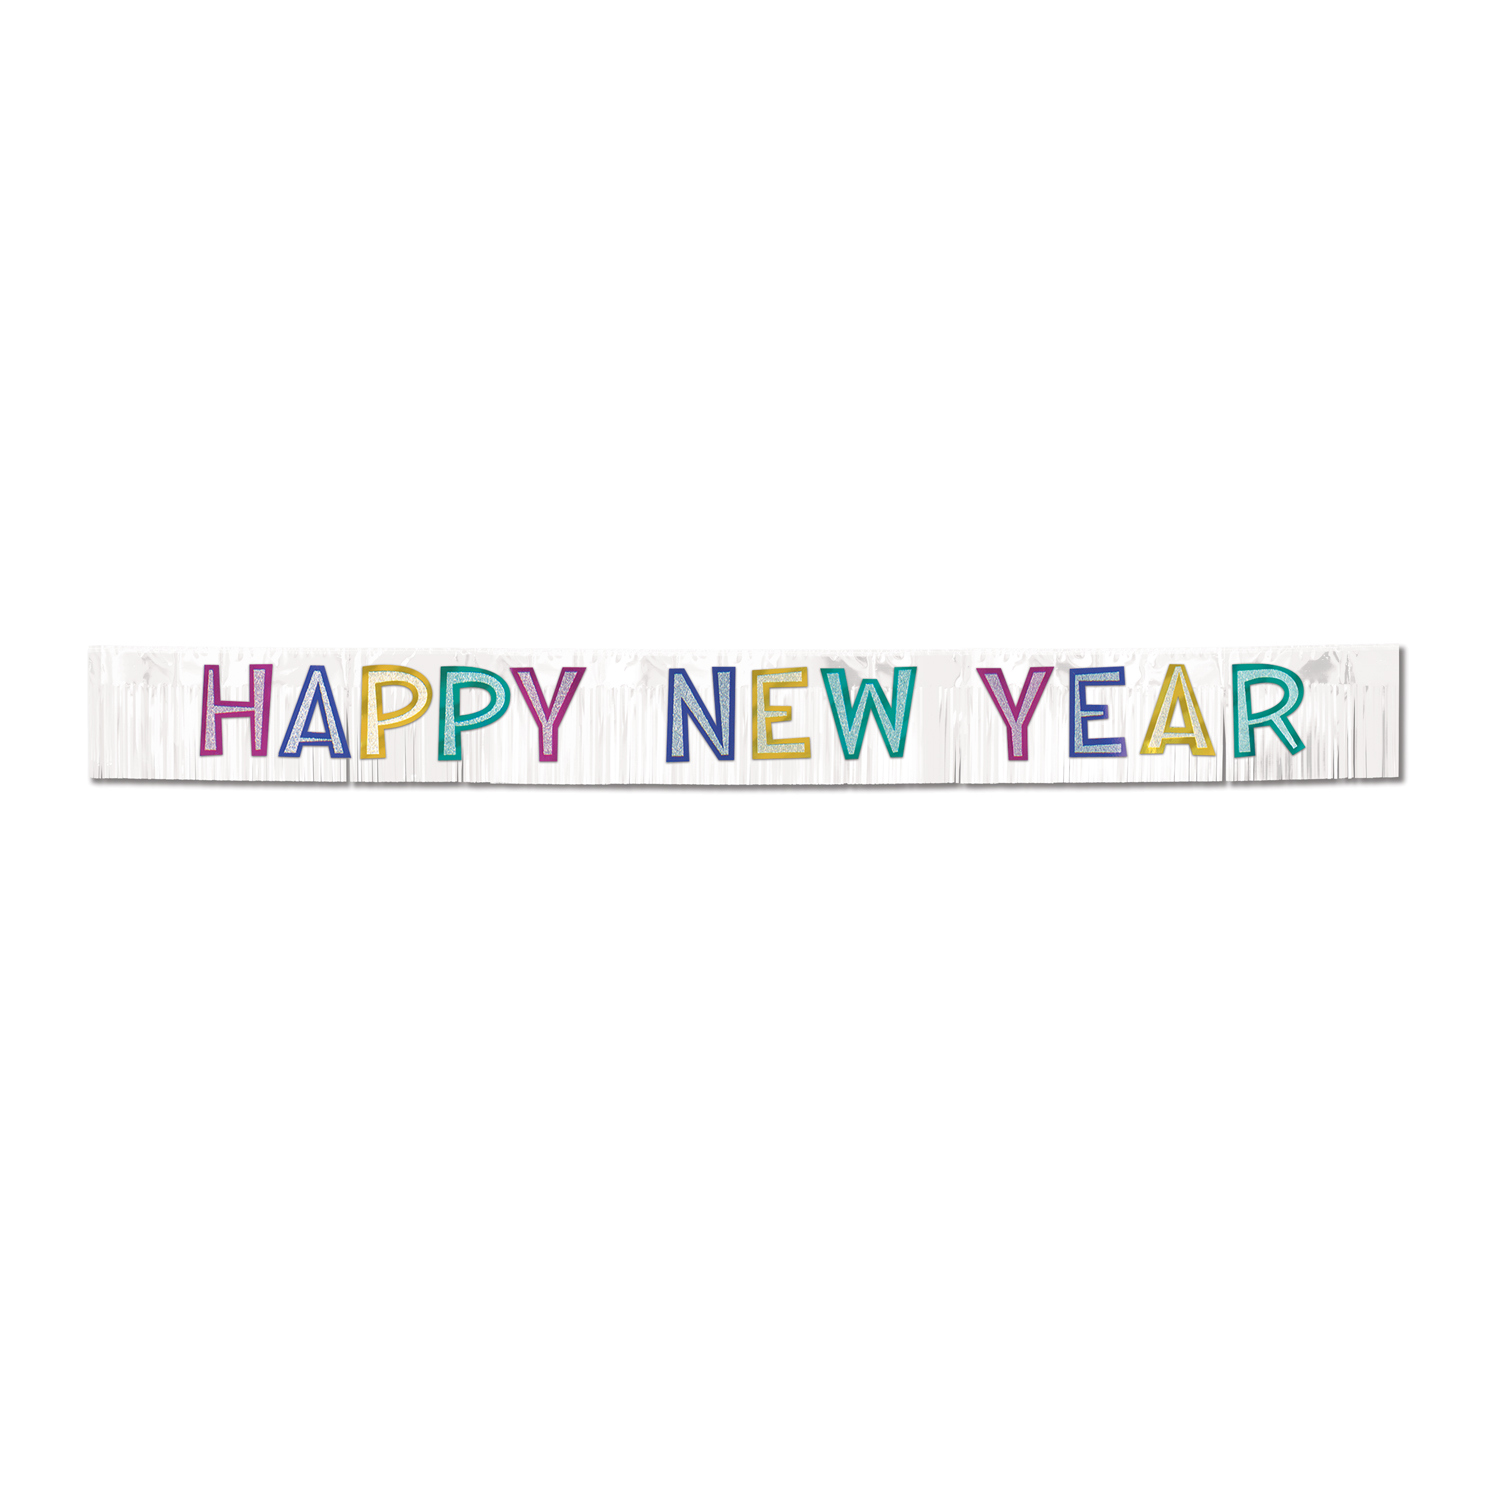 Metallic Happy New Year Banner (Pack of 1) Metallic Happy New Year Banner, Metallic Banner, Banners, Sign Banners, Stringers, New Year Banners, New Year's Eve, Holiday Banner